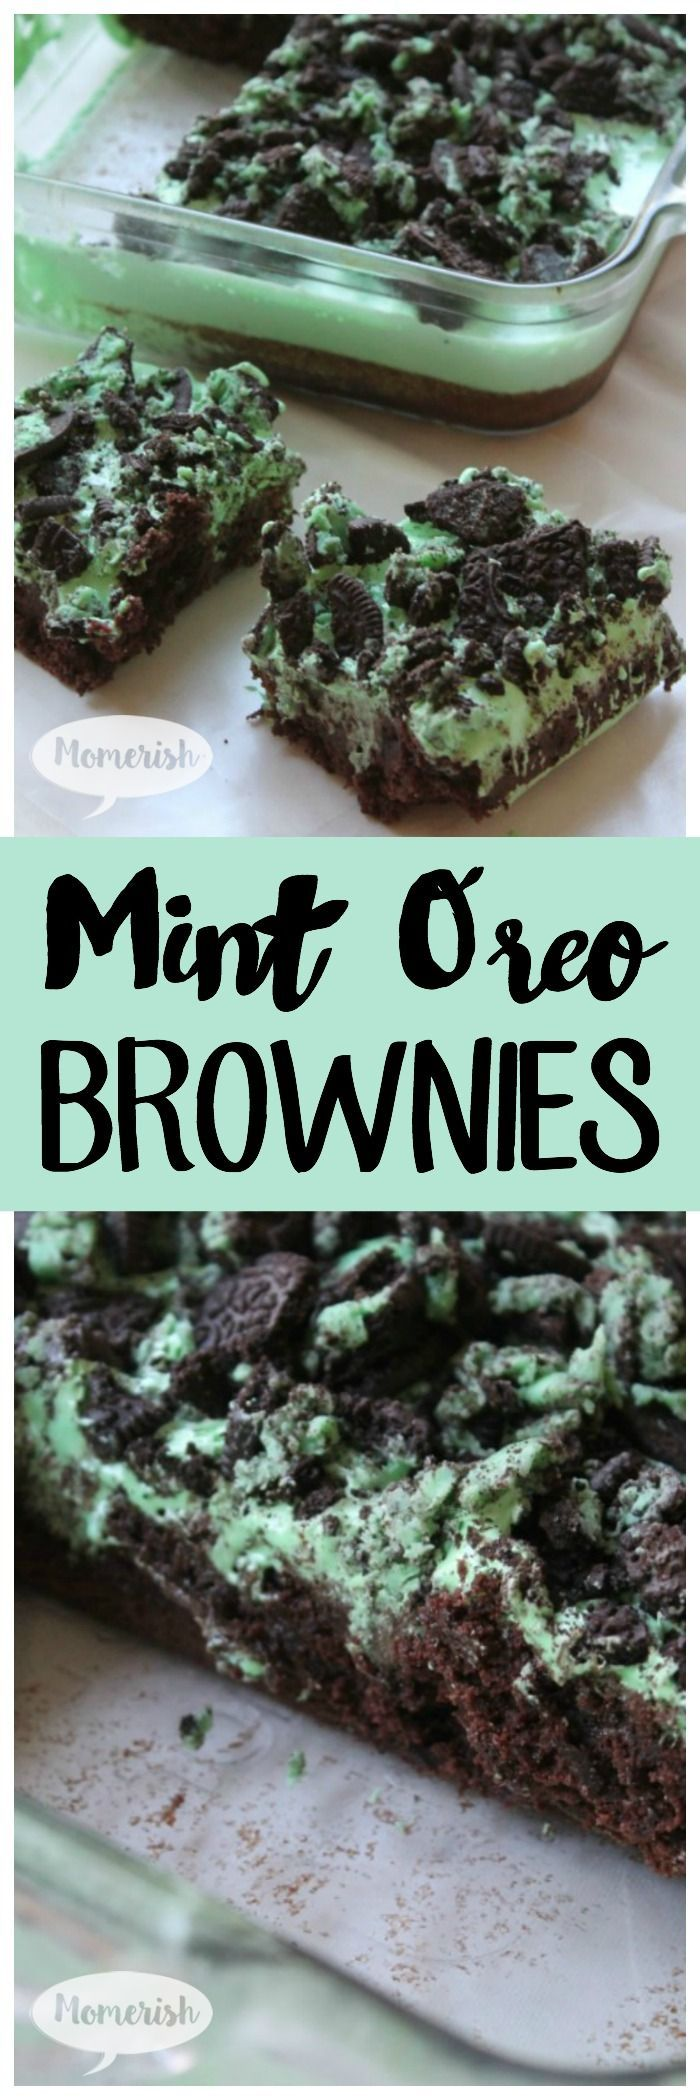 Mint Oreo Brownies - This delicious Oreo dessert is heavenly, layered with mint, marshmallow, and cookies! Get the recipe now!!